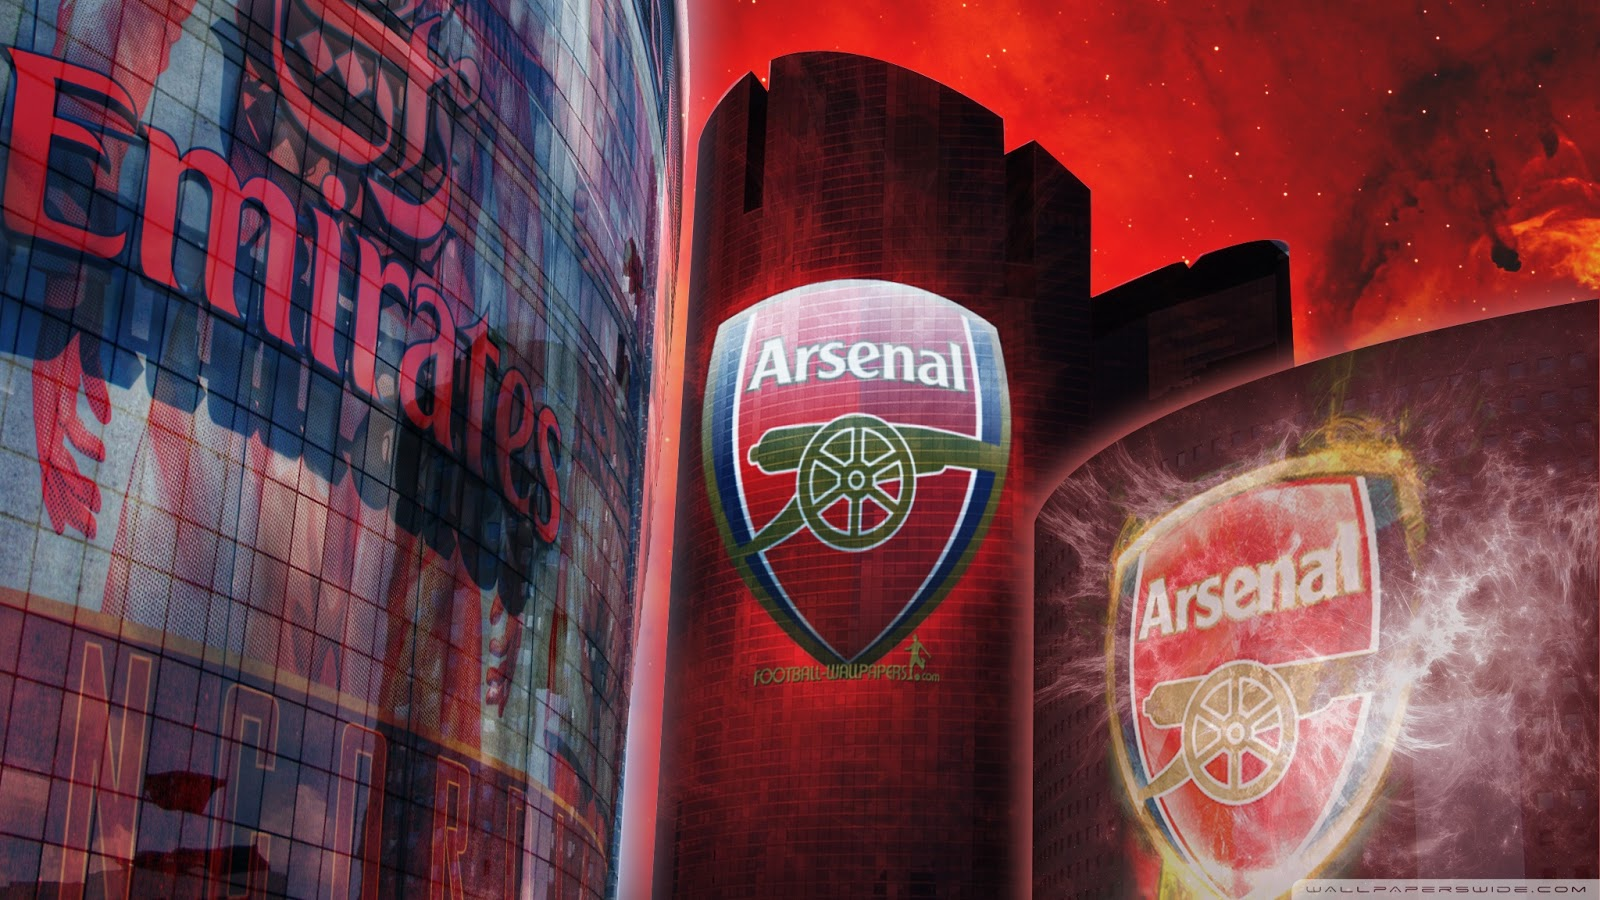 http://4.bp.blogspot.com/--qAITASlqg8/UINzMZ2y0wI/AAAAAAAAALw/gUpcbIcF1cY/s1600/football-club-arsenal_2-wallpaper-2048x1152.jpg